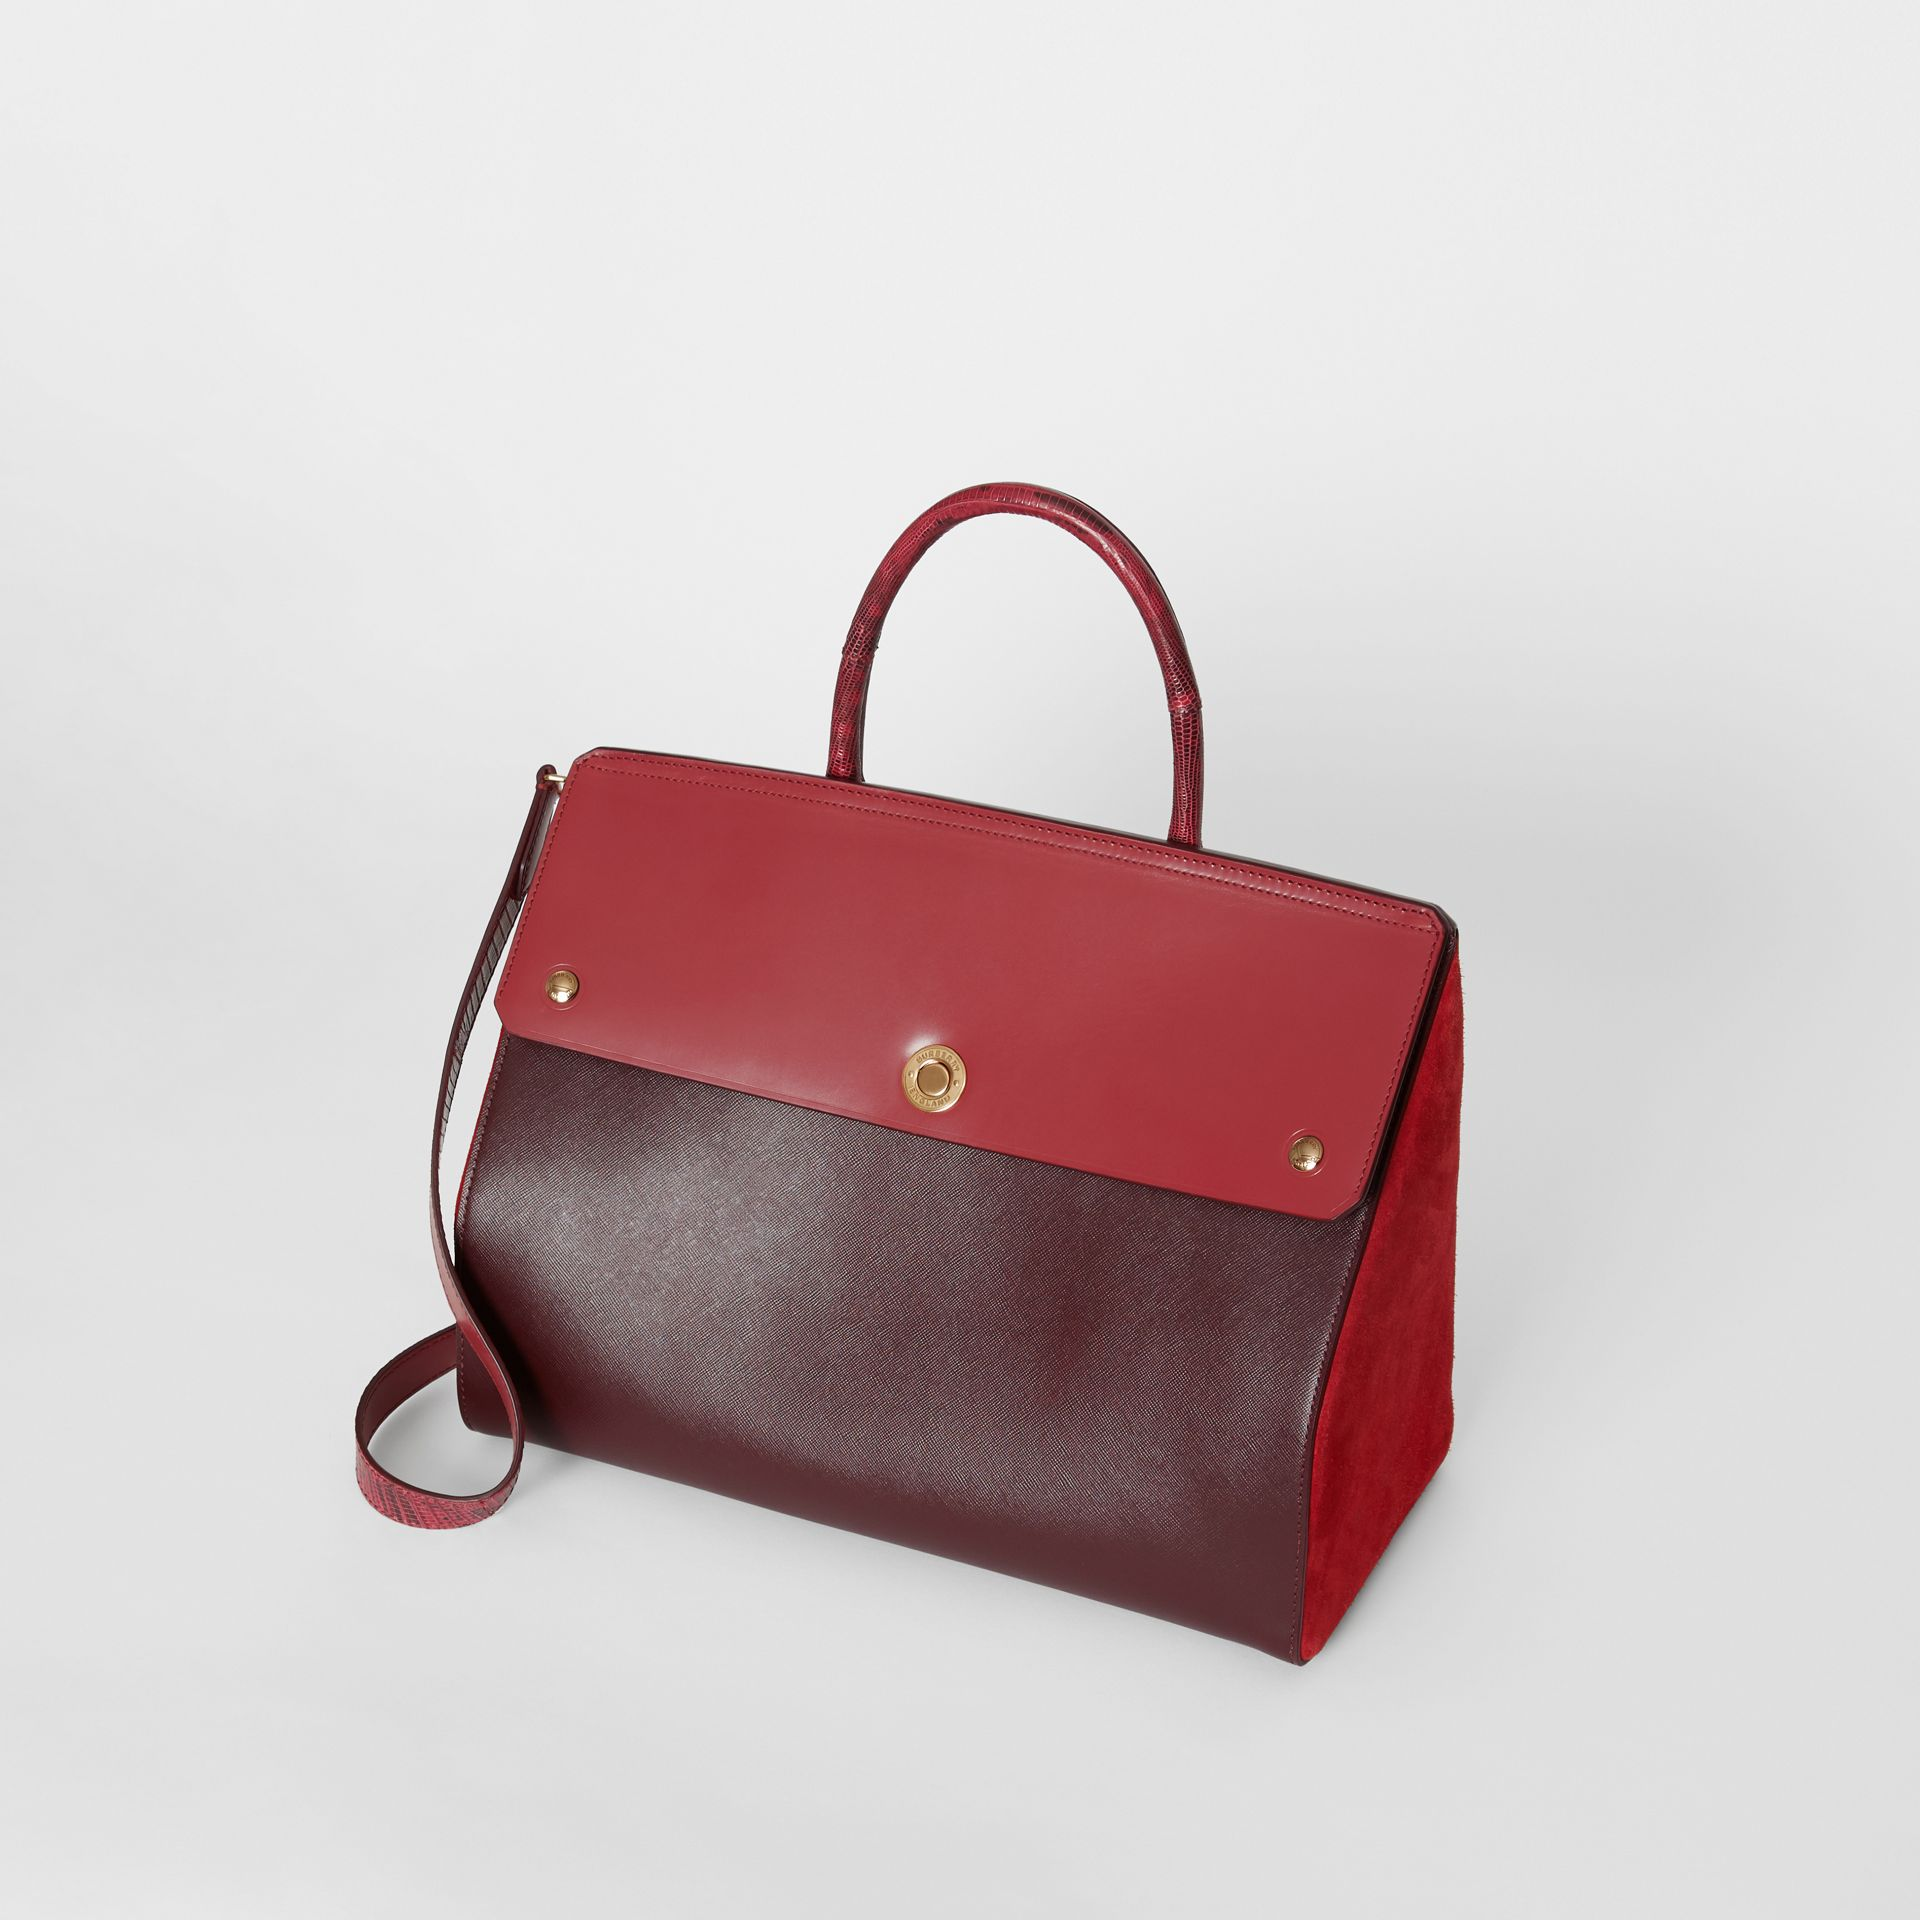 Medium Leather and Suede Elizabeth Bag in Crimson - Women | Burberry - gallery image 3